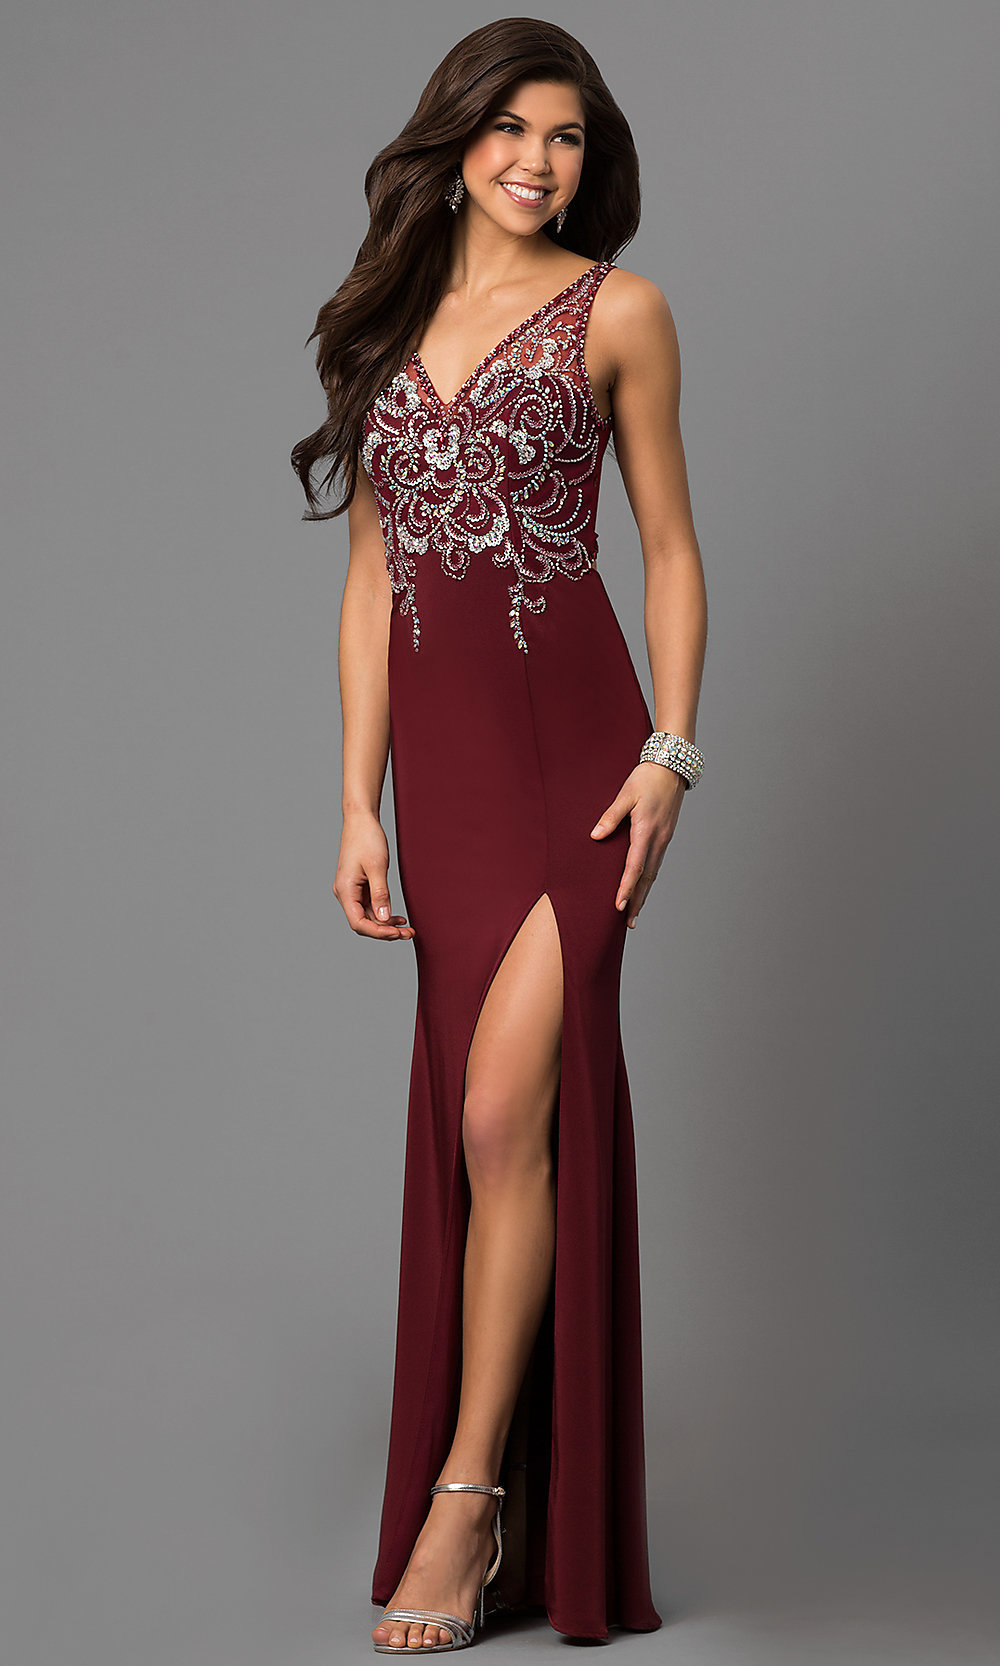 0323739721a7 Open-Back V-Neck Long Prom Dress with Beads-PromGirl